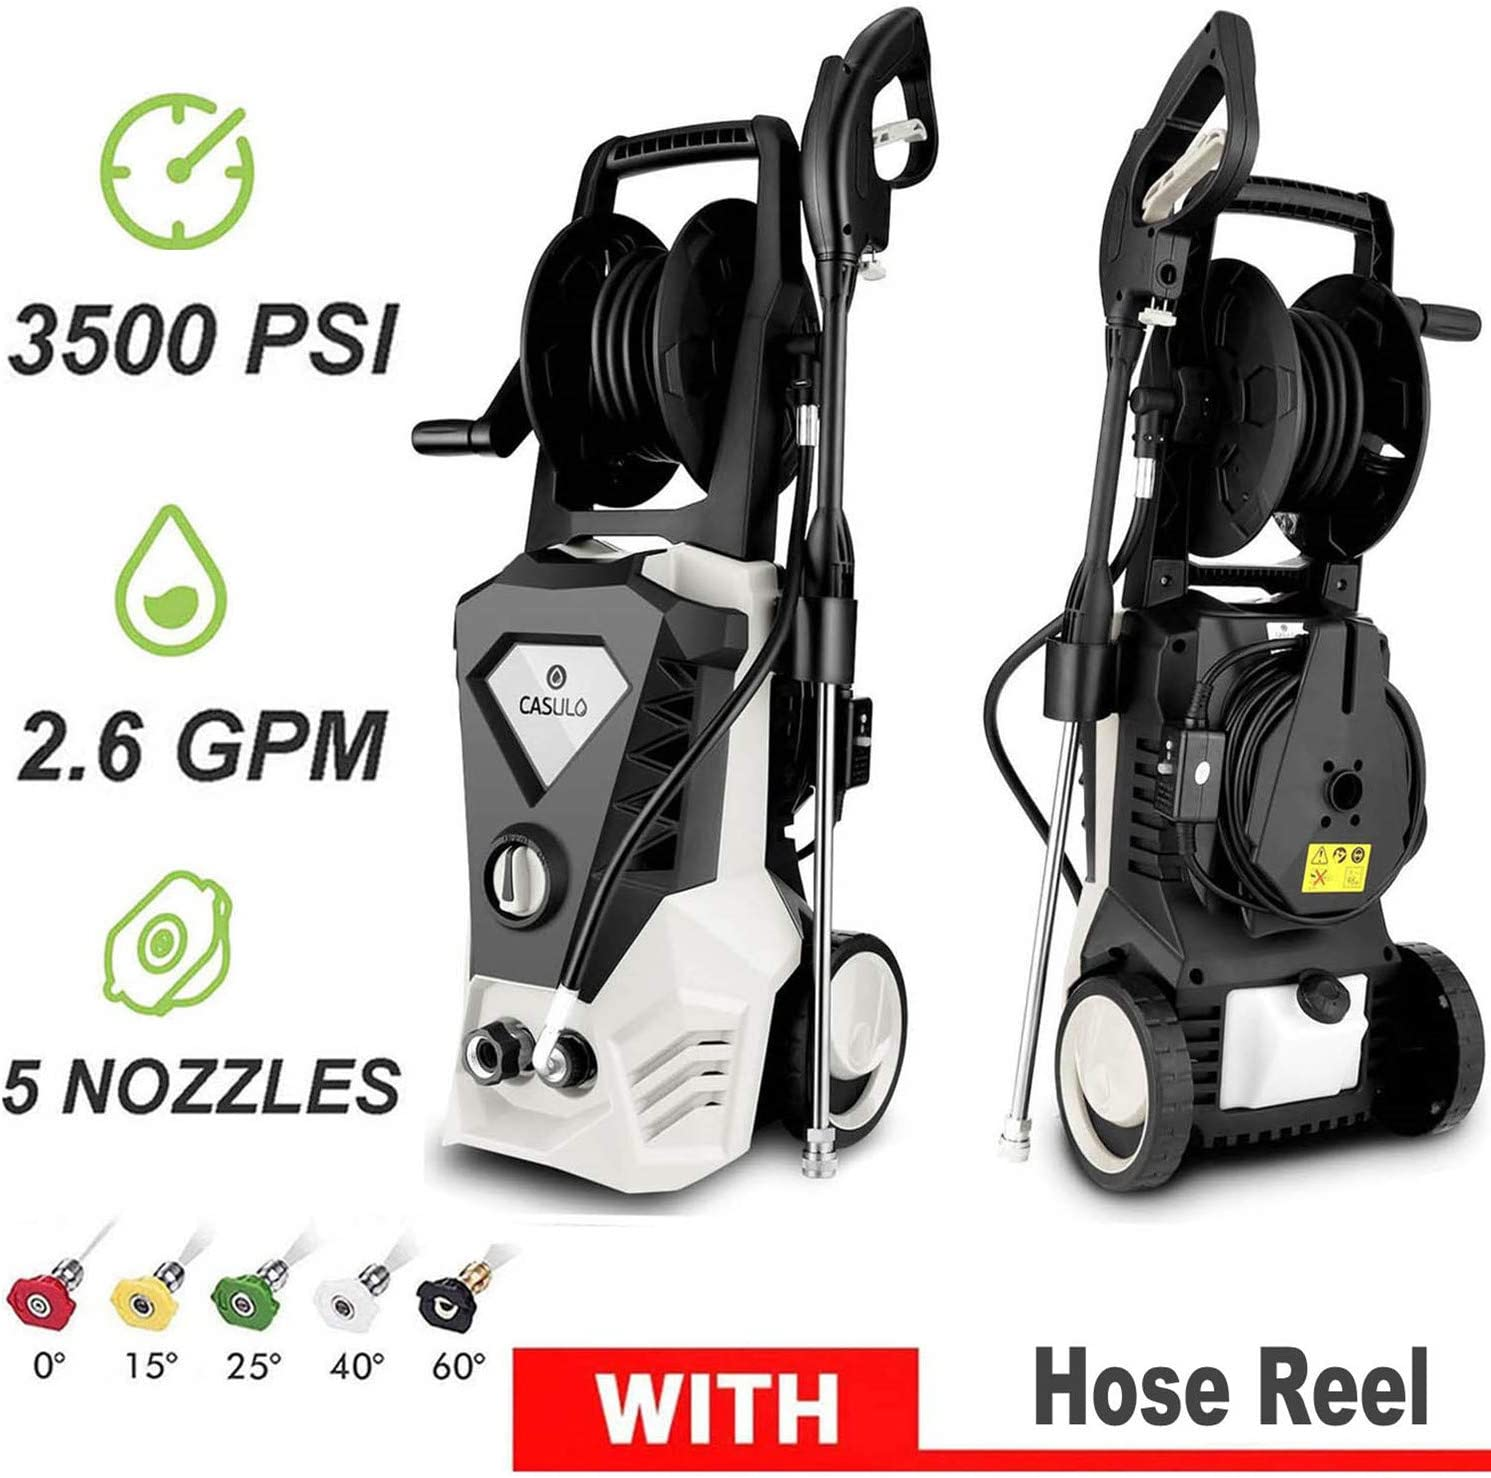 Wesoky Electric Pressure Washer Max 3500PSI 2.6GPM with Hose Reel, 1800W Power Washer Machine, High Pressure Car Patio Garden Yard Cleaner with 5 Adjustable Nozzle, Spray Gun & 10m Hose (US Stock)